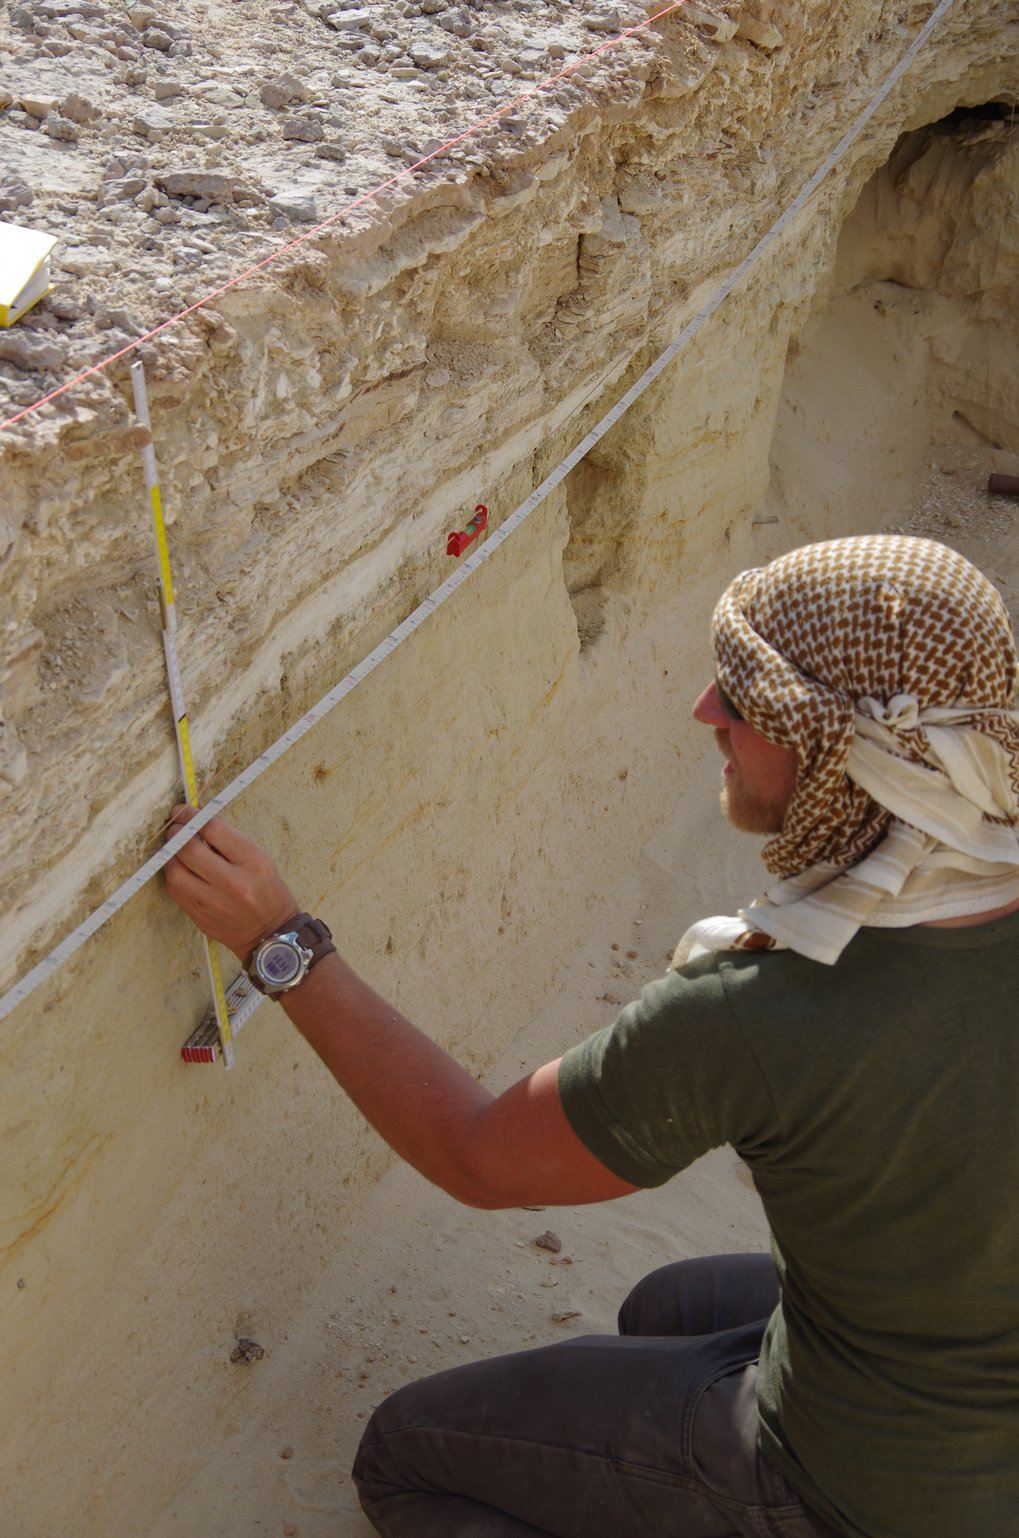 Palaeodeserts scientists are examining changes in environments through time by sampling palaeolake sequences.